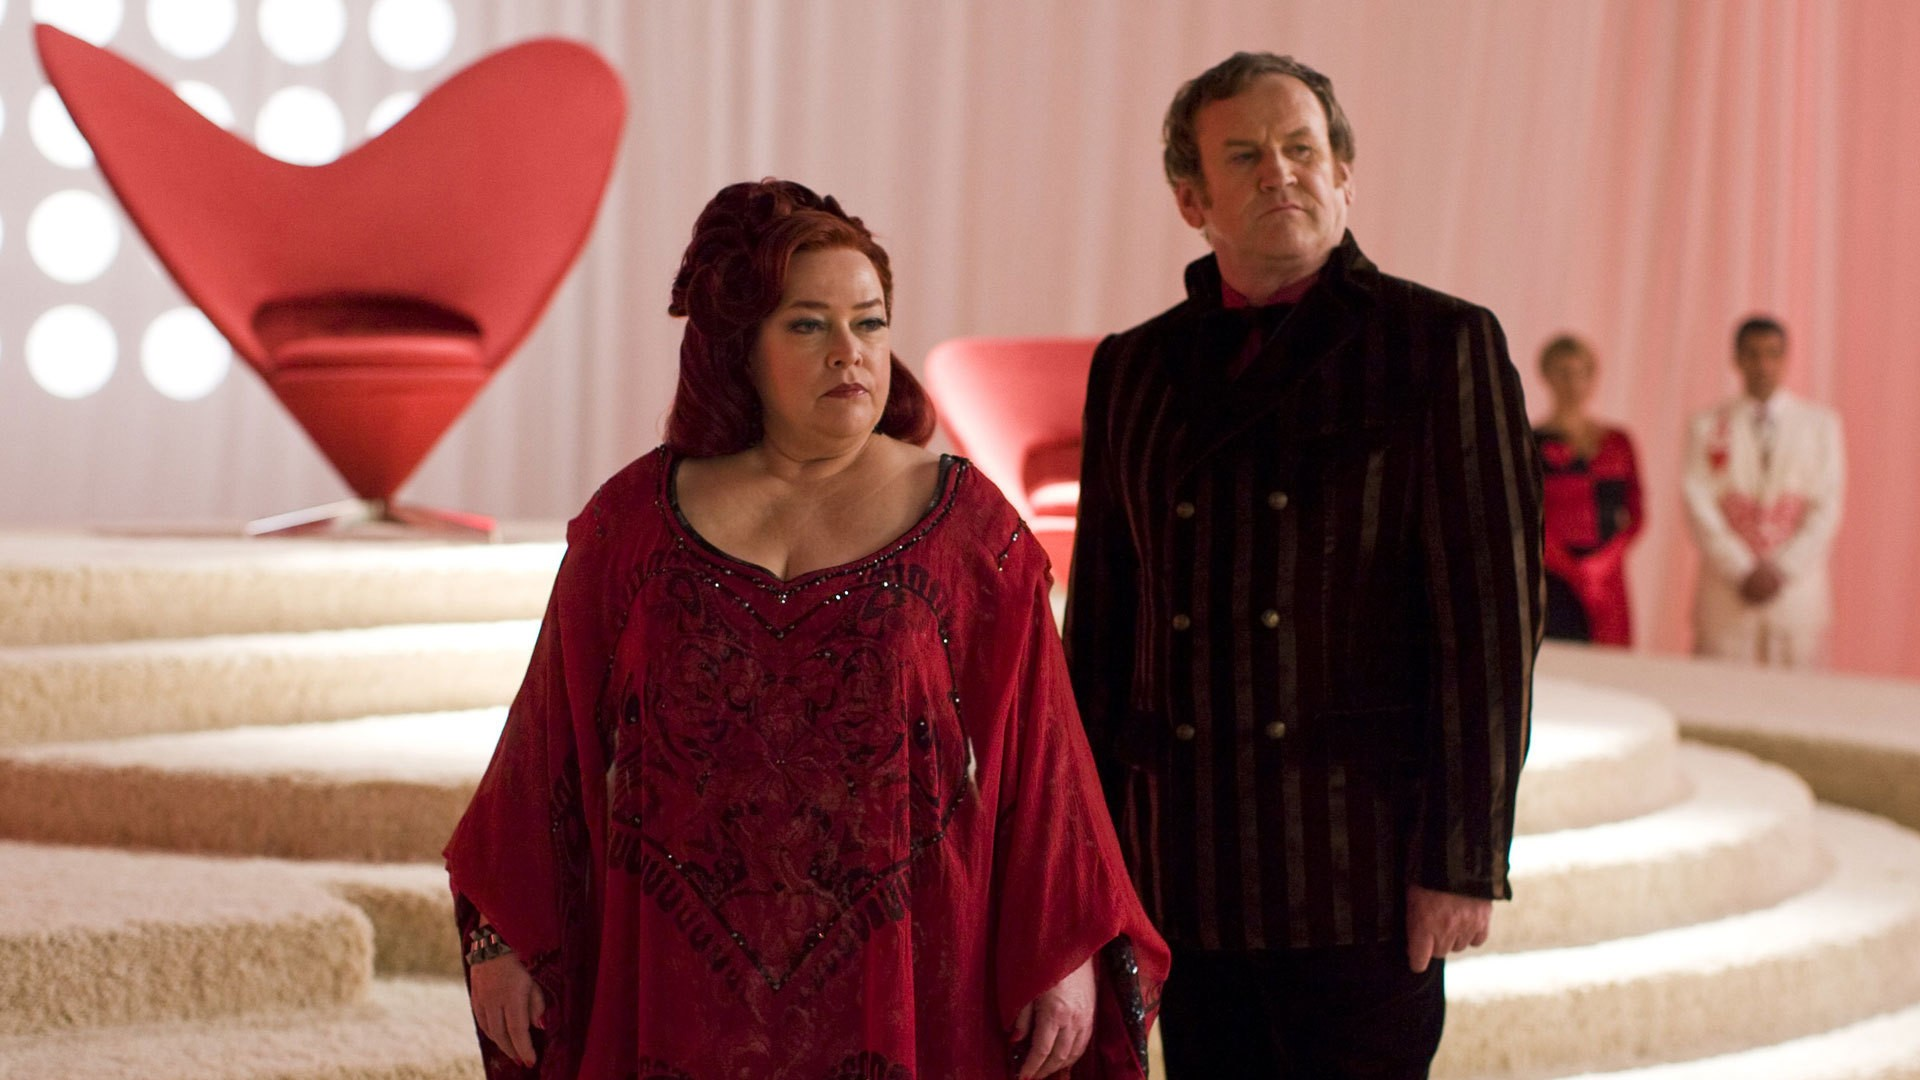 The Red Queen (Kathy Bates) and The King of Hearts (Colm Meaney) in Alice (2009)